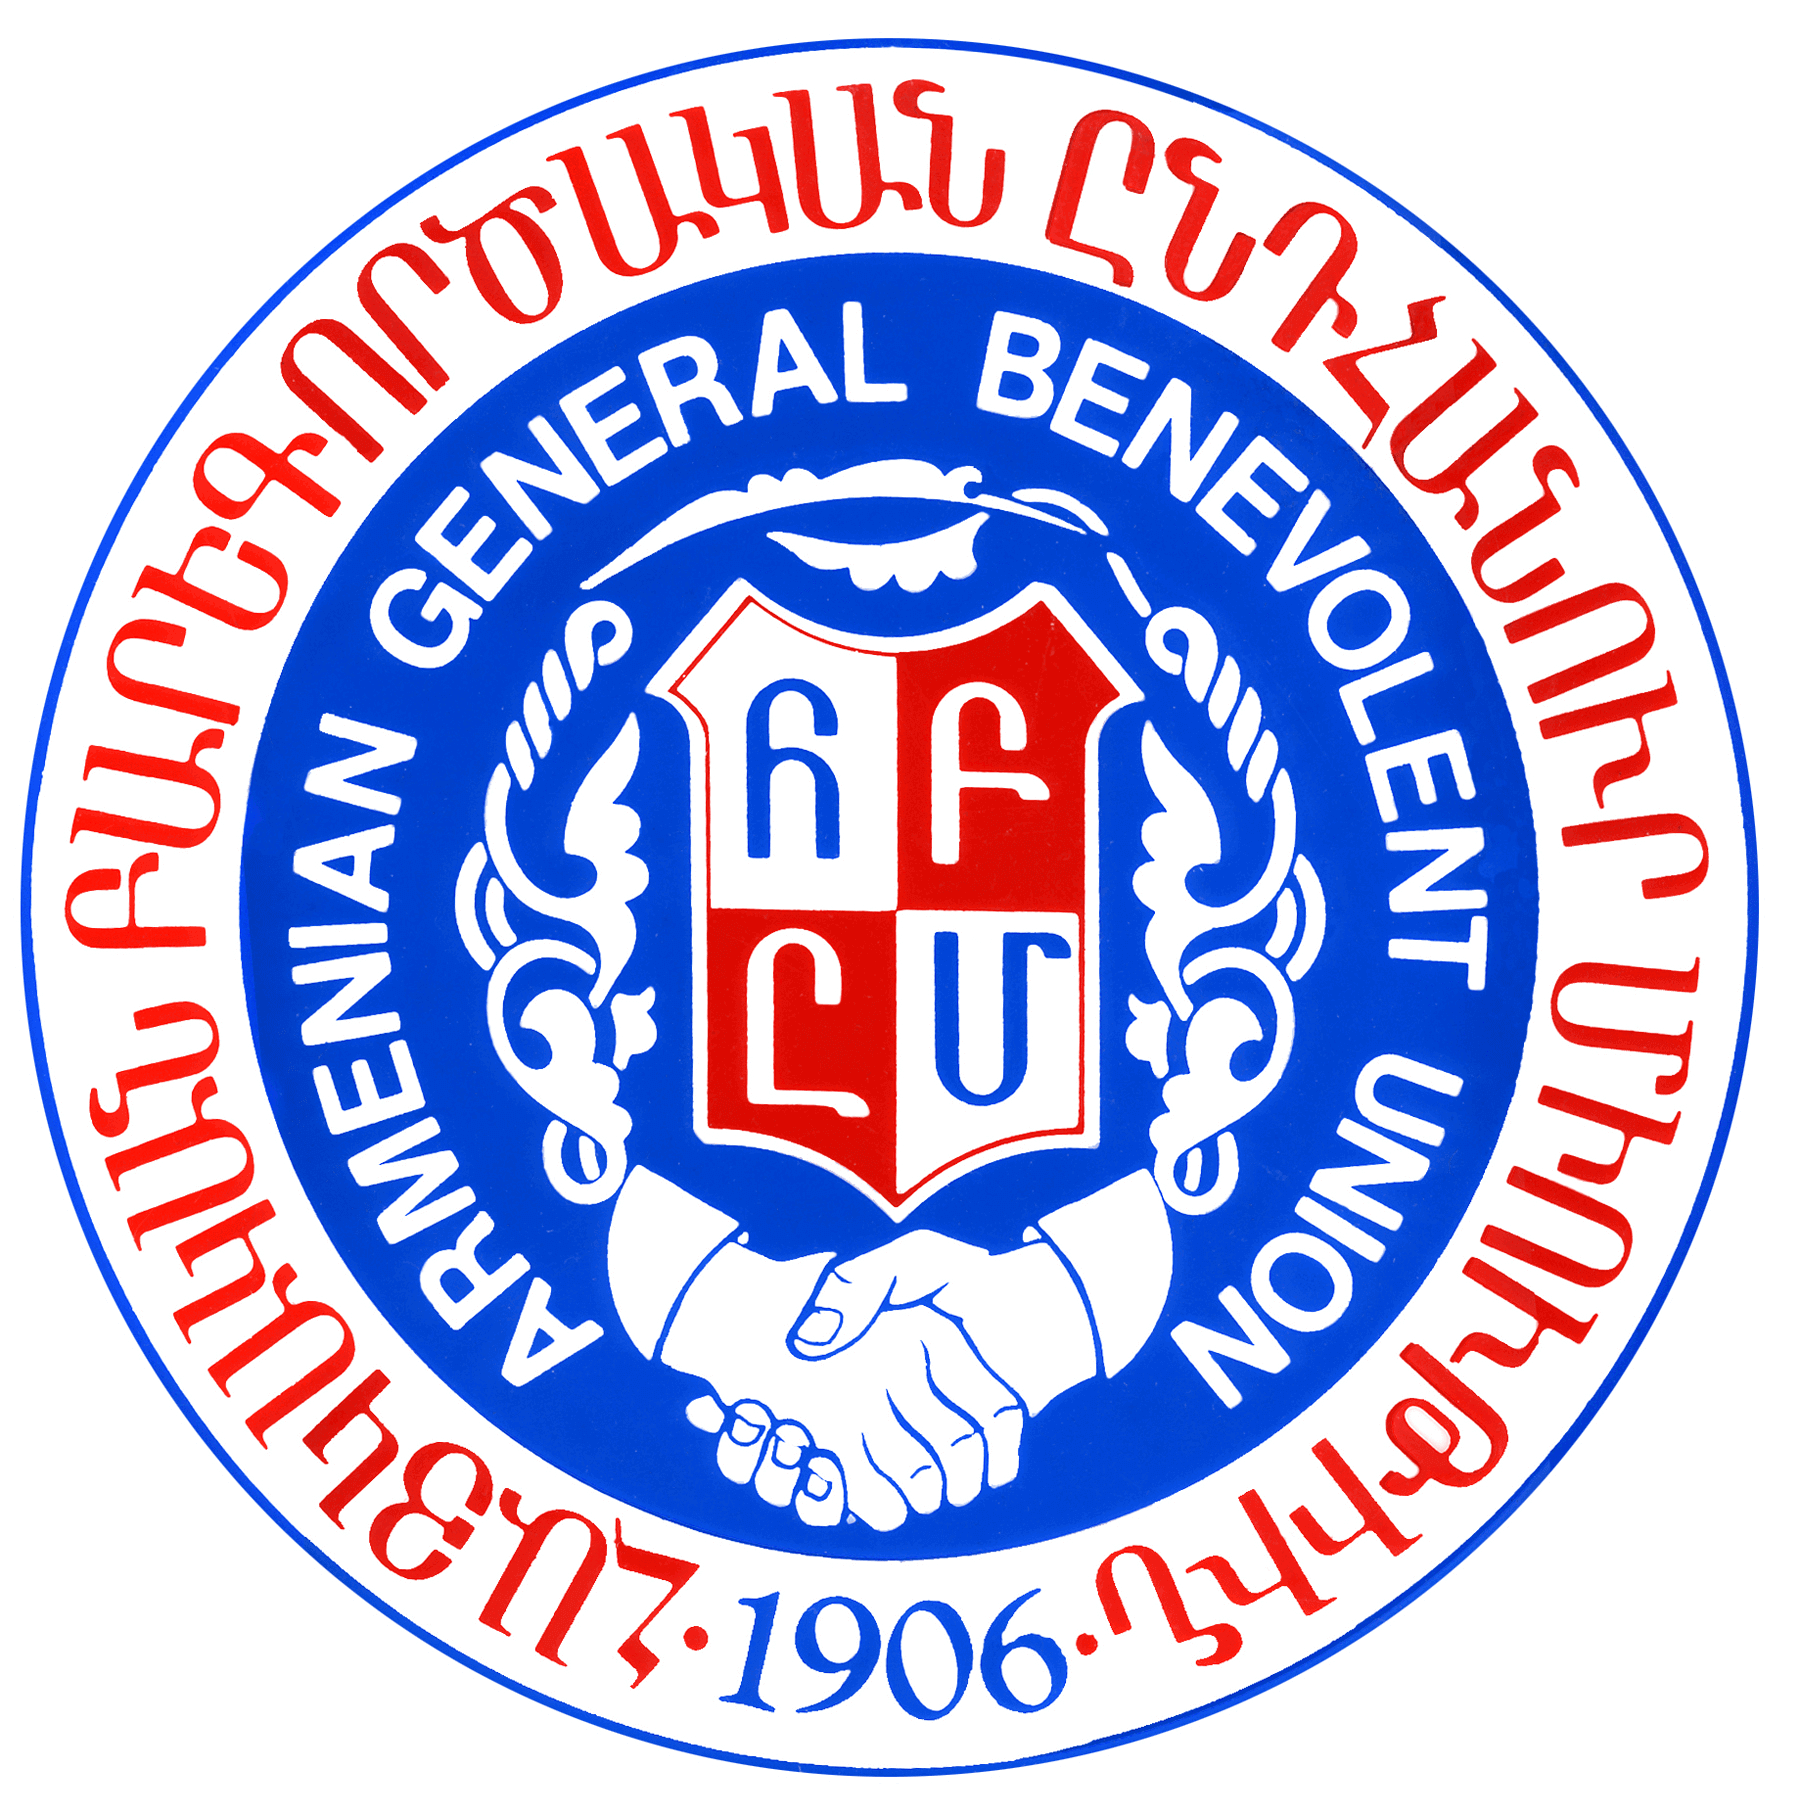 Armenian General Benevolent Union logo